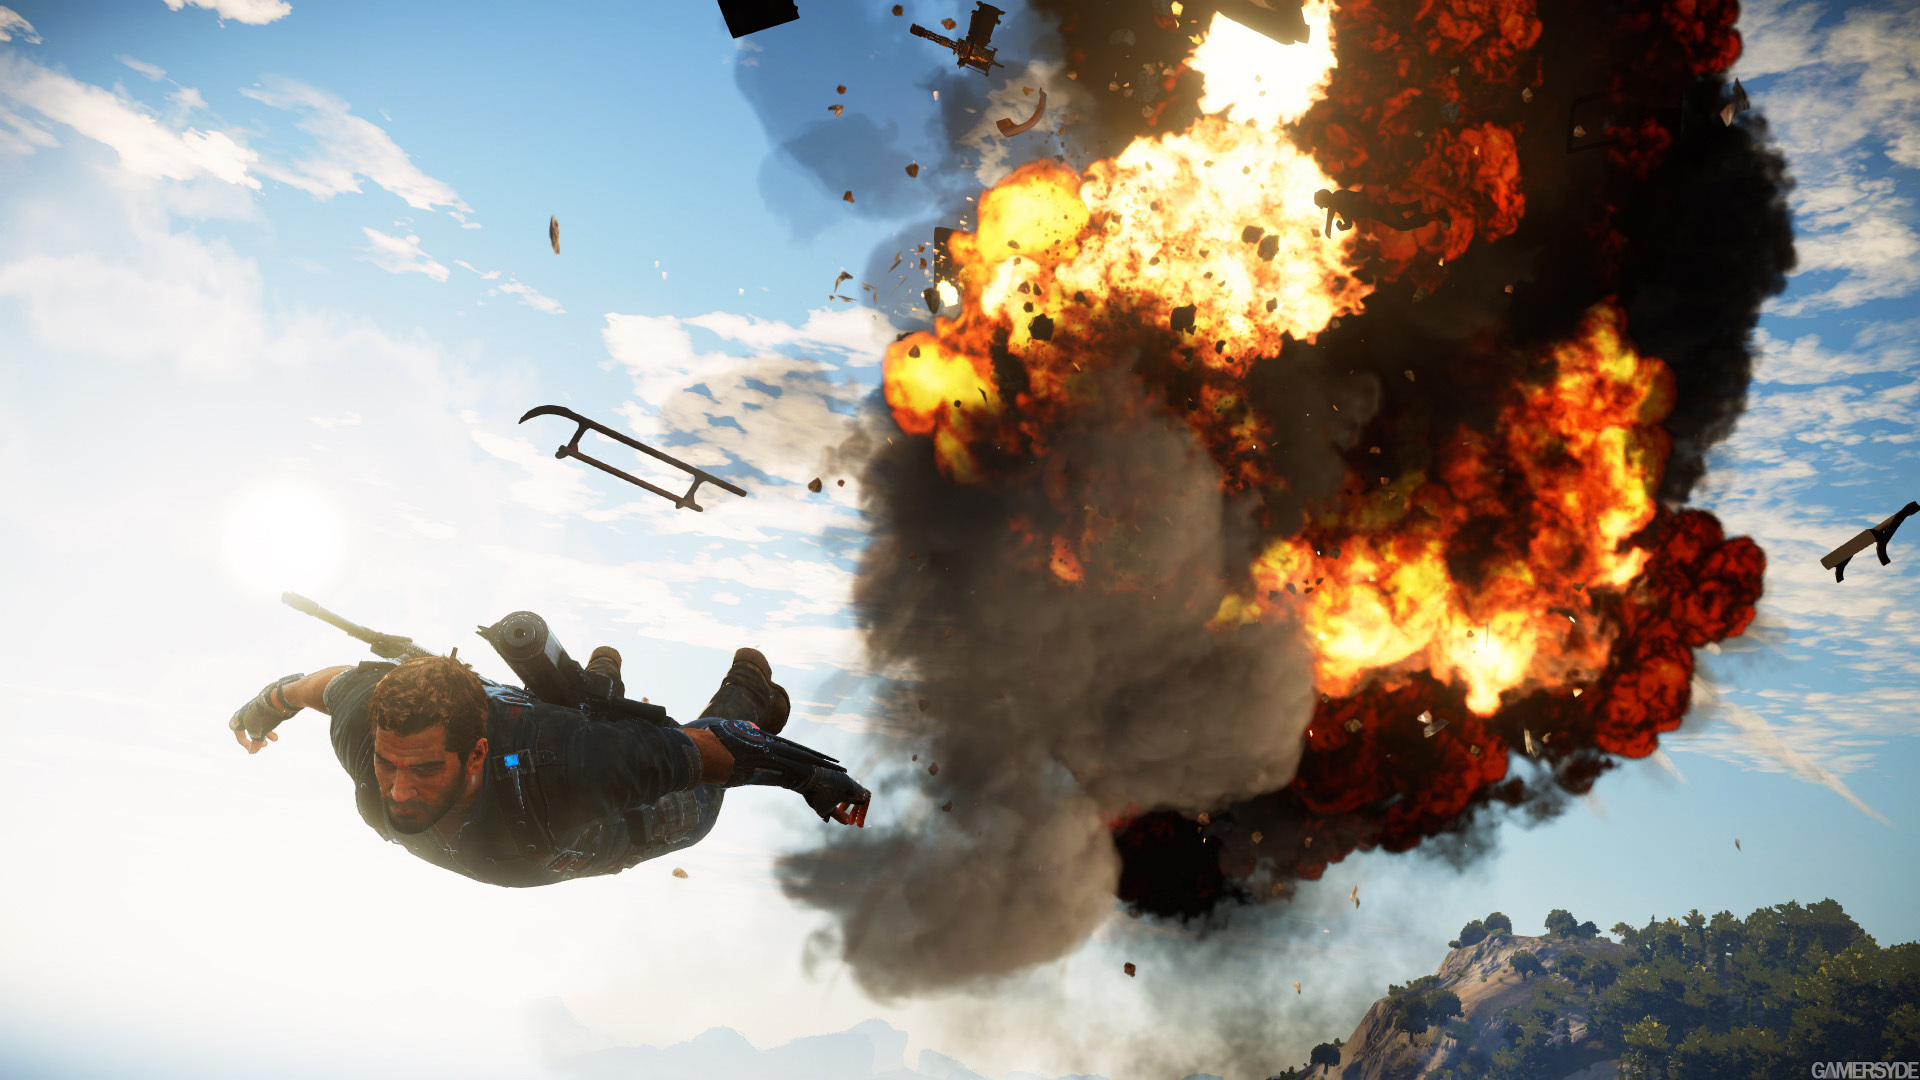 image just cause 3 27540 3114 0004